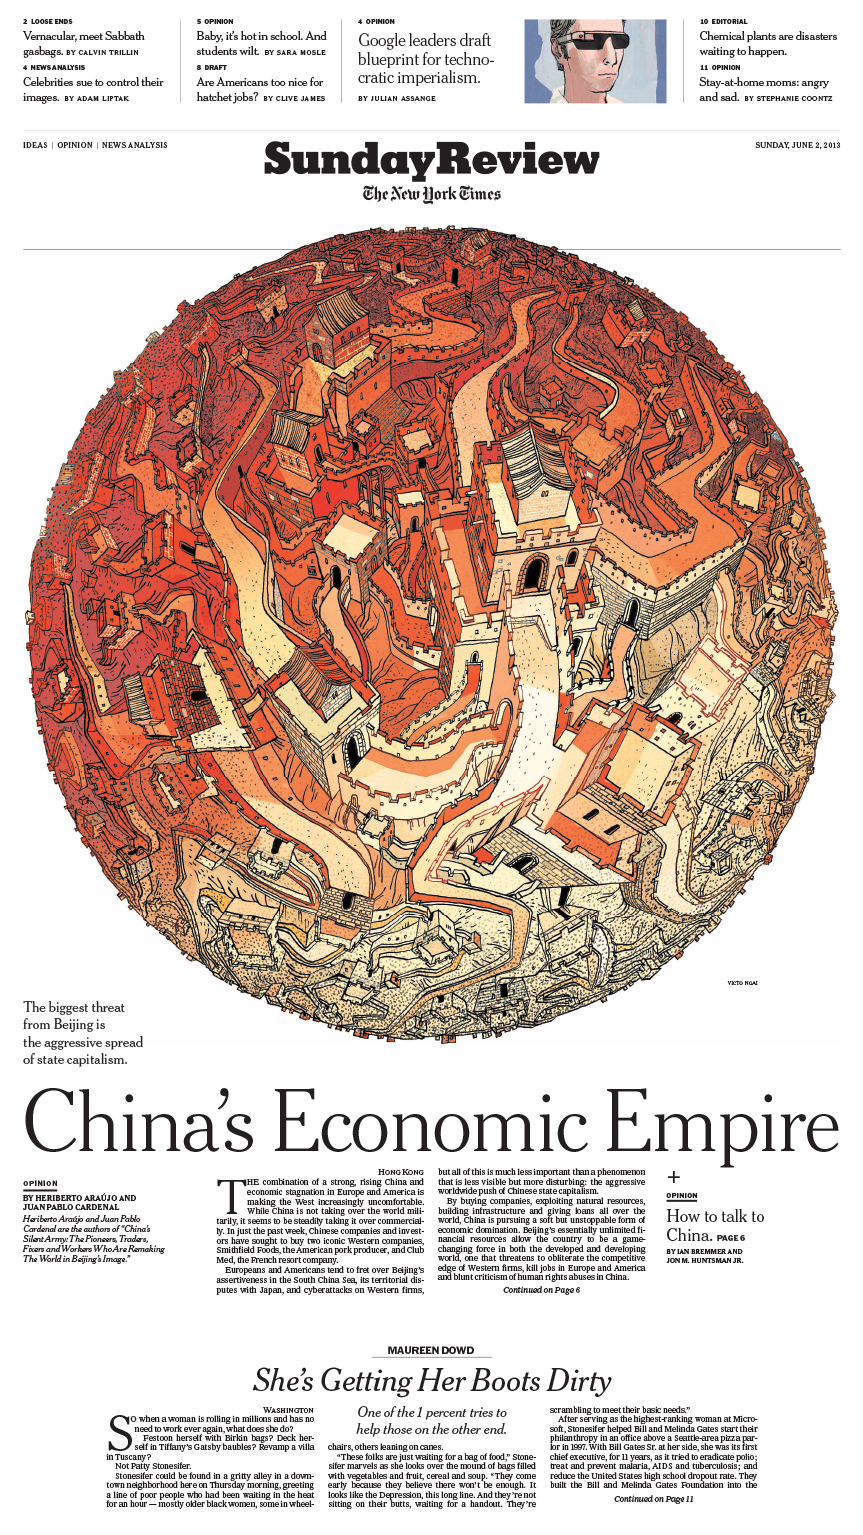 Sunday Review Cover: China's Economic Empire - art direction & design by Aviva Michaelov & illustration by Victo Ngai